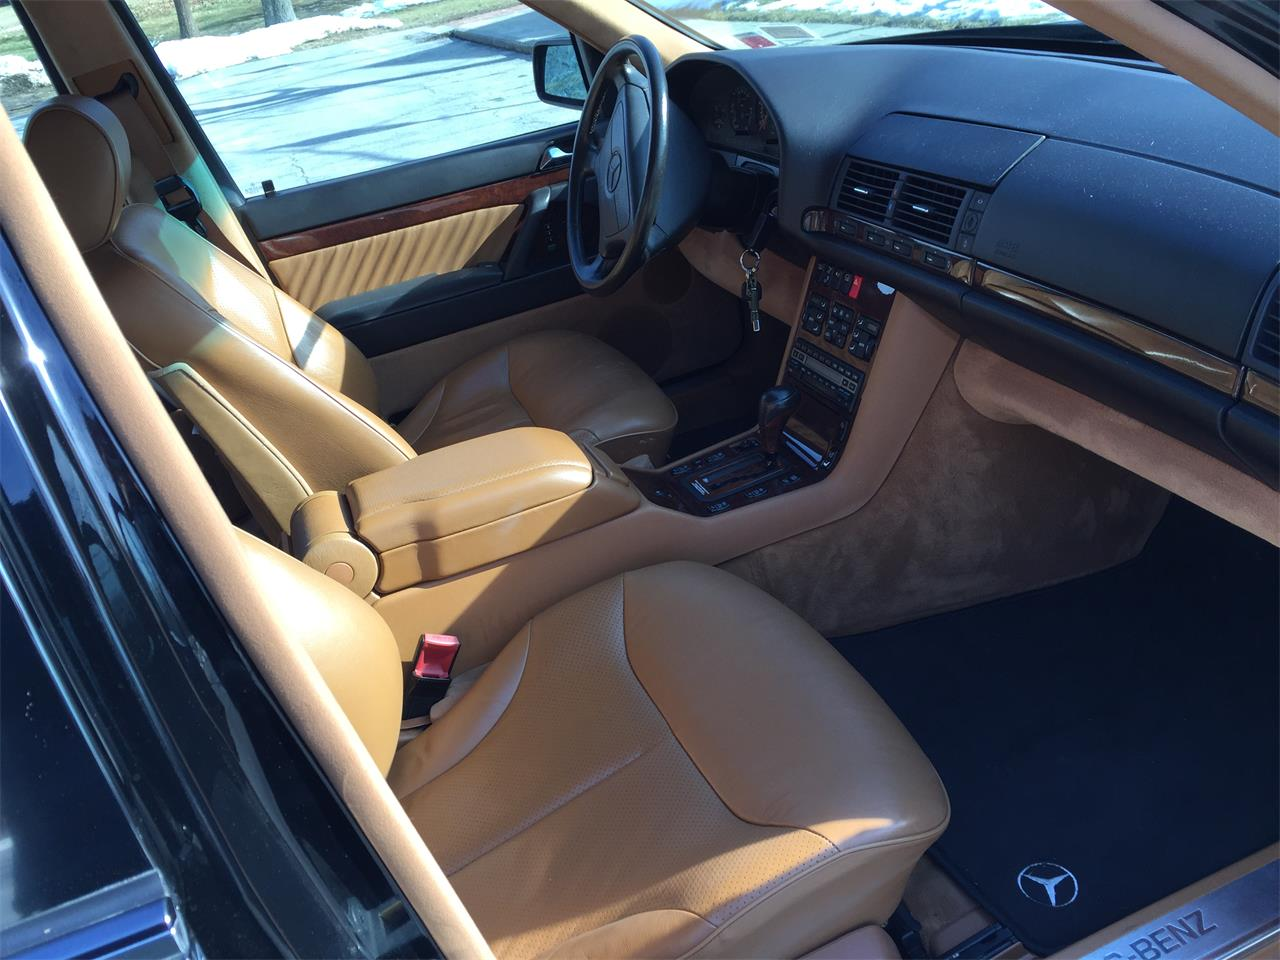 Large Picture of 1993 Mercedes-Benz 600SEL located in New York - $18,000.00 Offered by a Private Seller - L1JJ